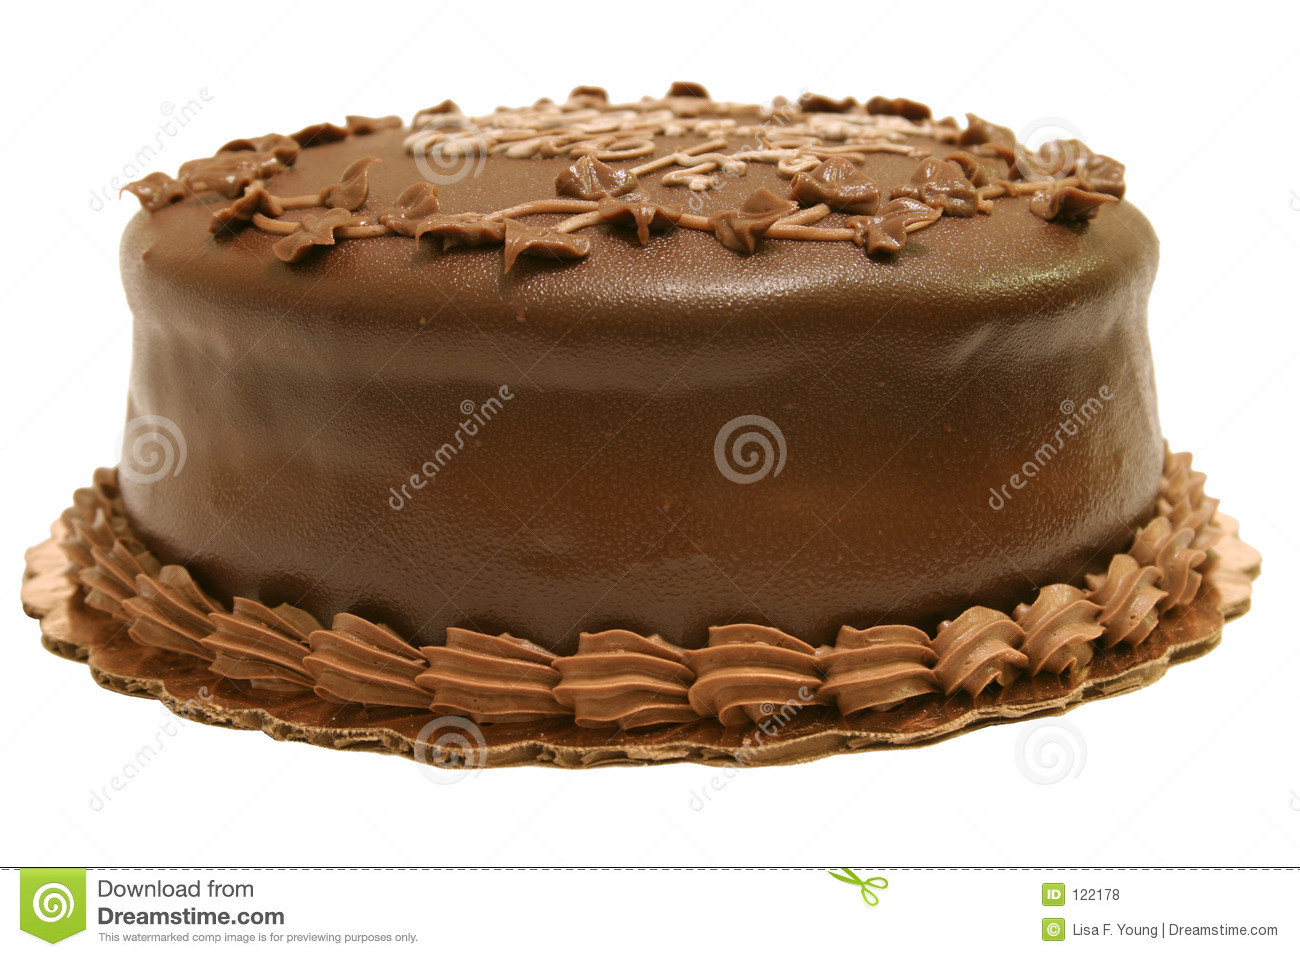 A Whole Chocolate Cake Isolated Against White Background